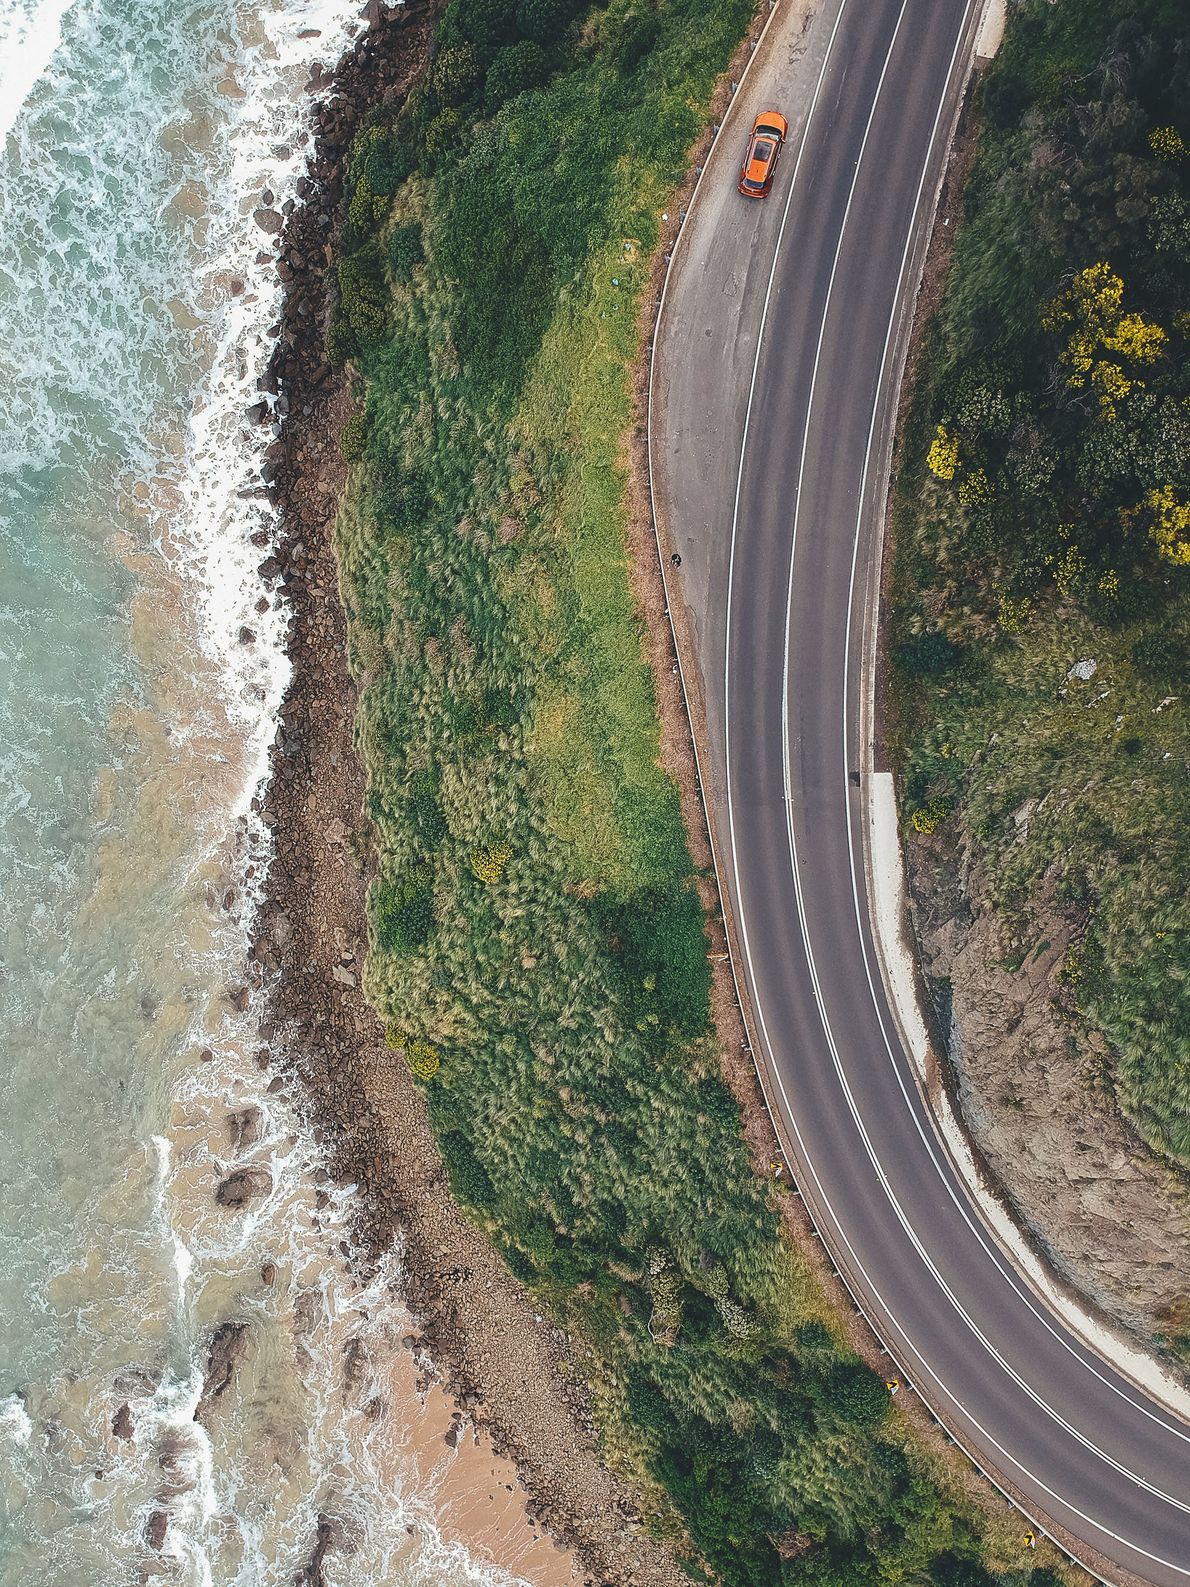 Aerial view of the Great Ocean Road as it curves to meet the beach along the southern coast of Australia.